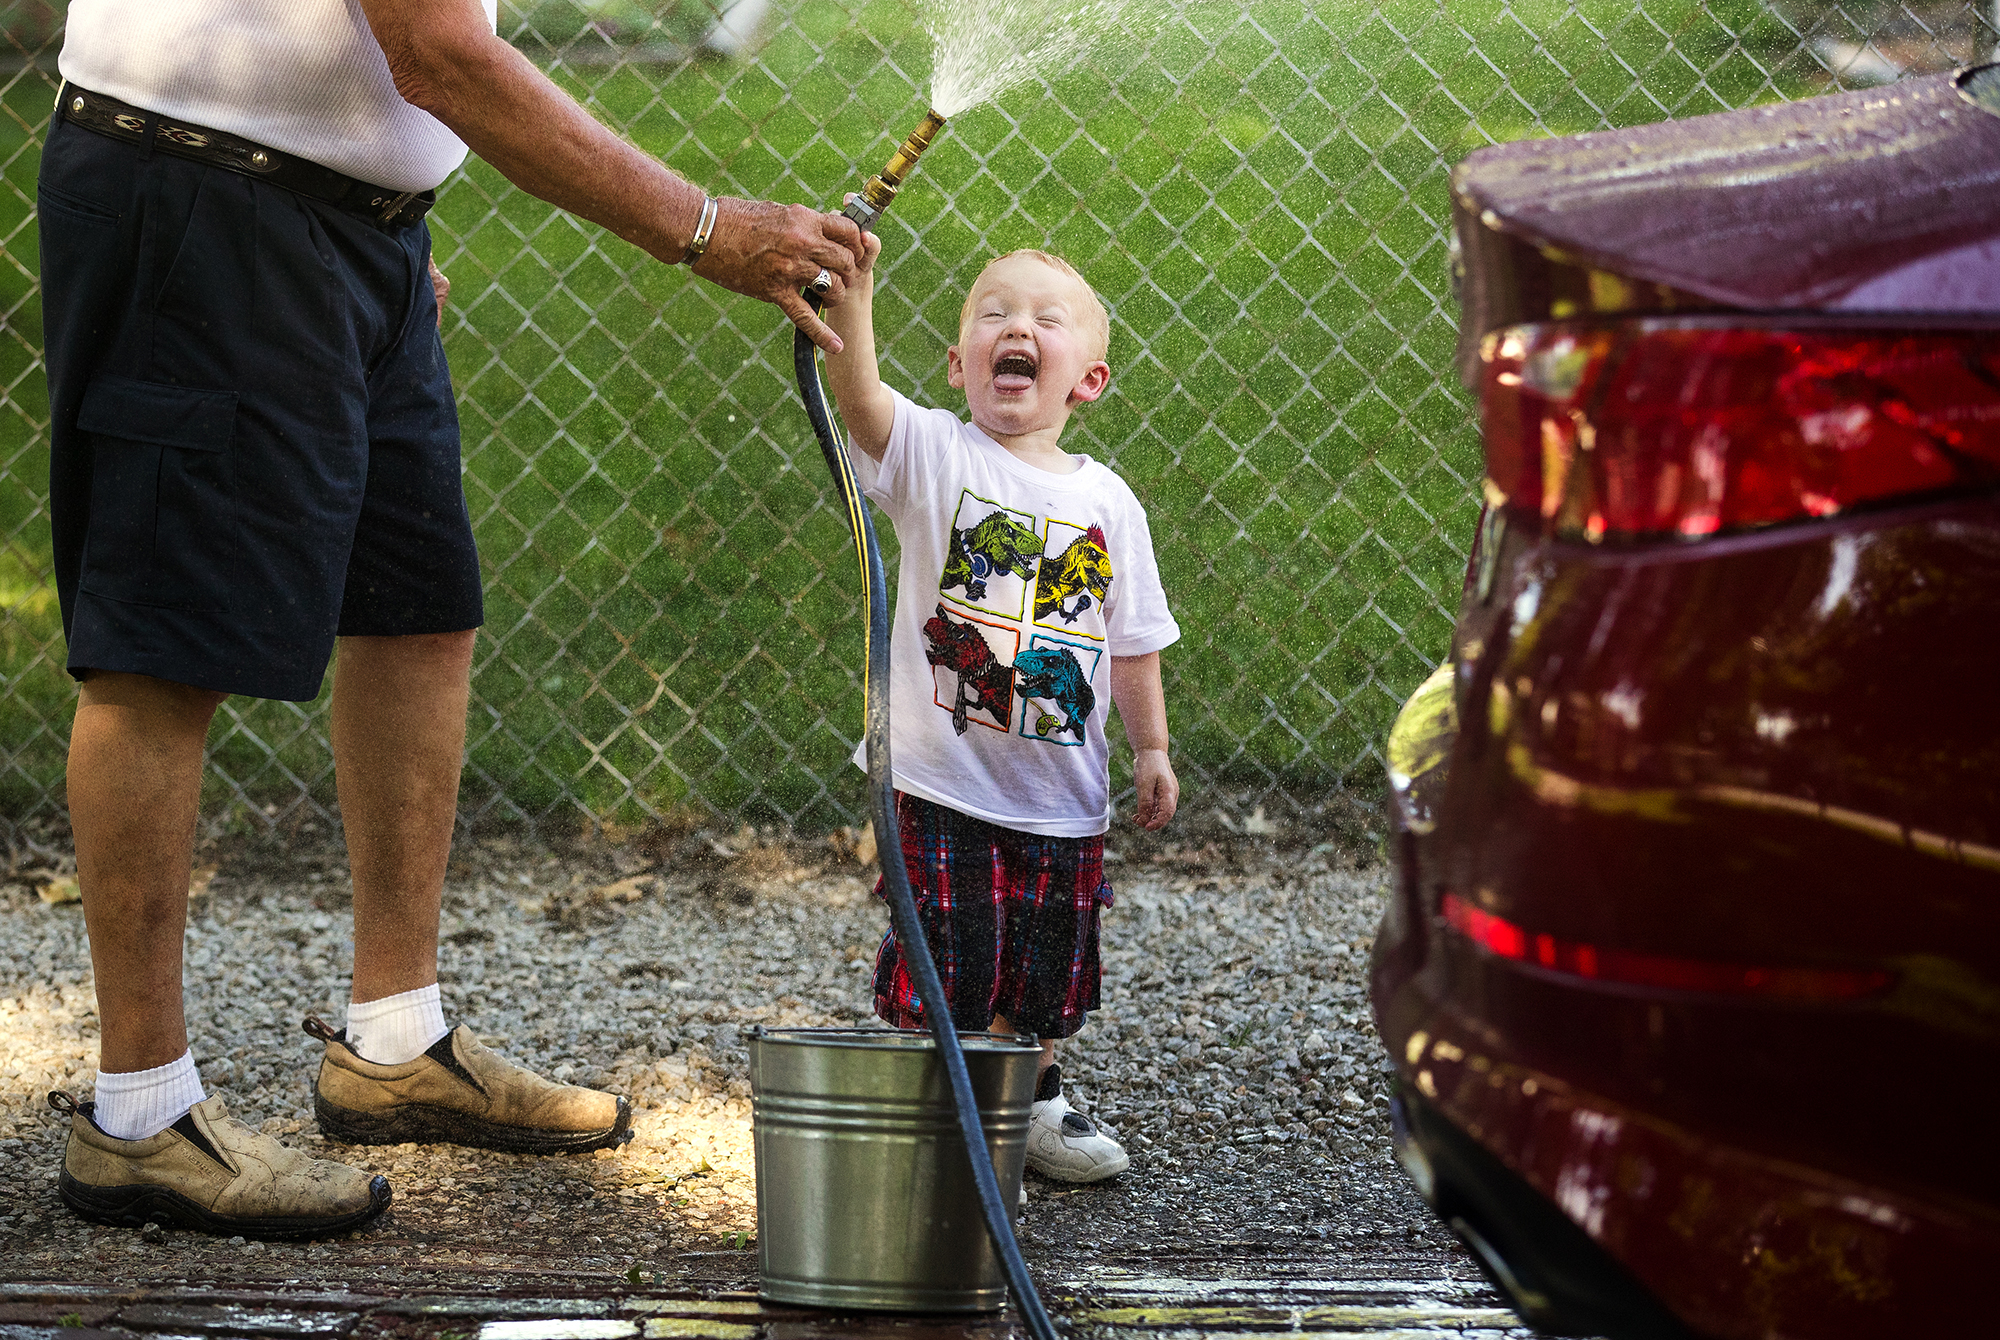 Two-year-old Hayden Leskovisek stands under a spray of his own making as helps his grandfather Gary Leskovisek wash the car in front of their Pawnee home Wednesday, June 20, 2018. According to his grandpa, Hayden, who lives next door, stops by after daycare every day to hang out. [Ted Schurter/The State Journal-Register]